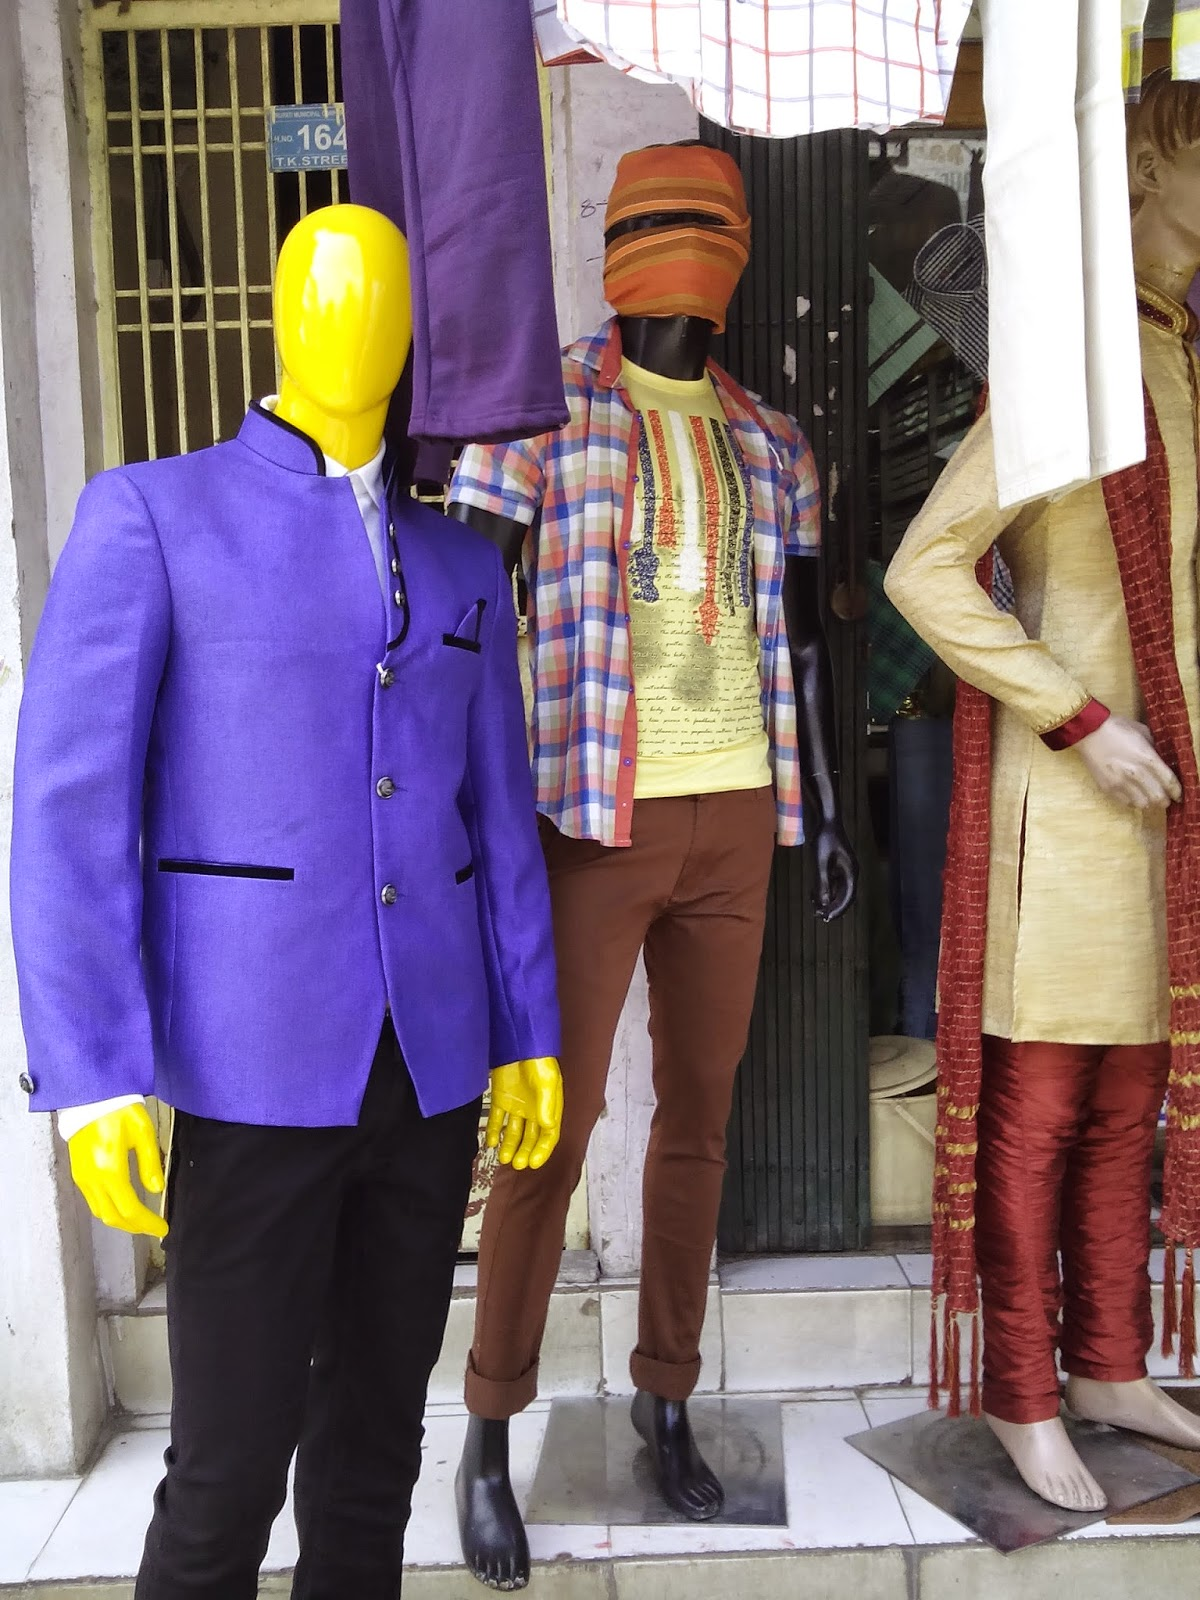 pick N wear cloth show room Tirupati